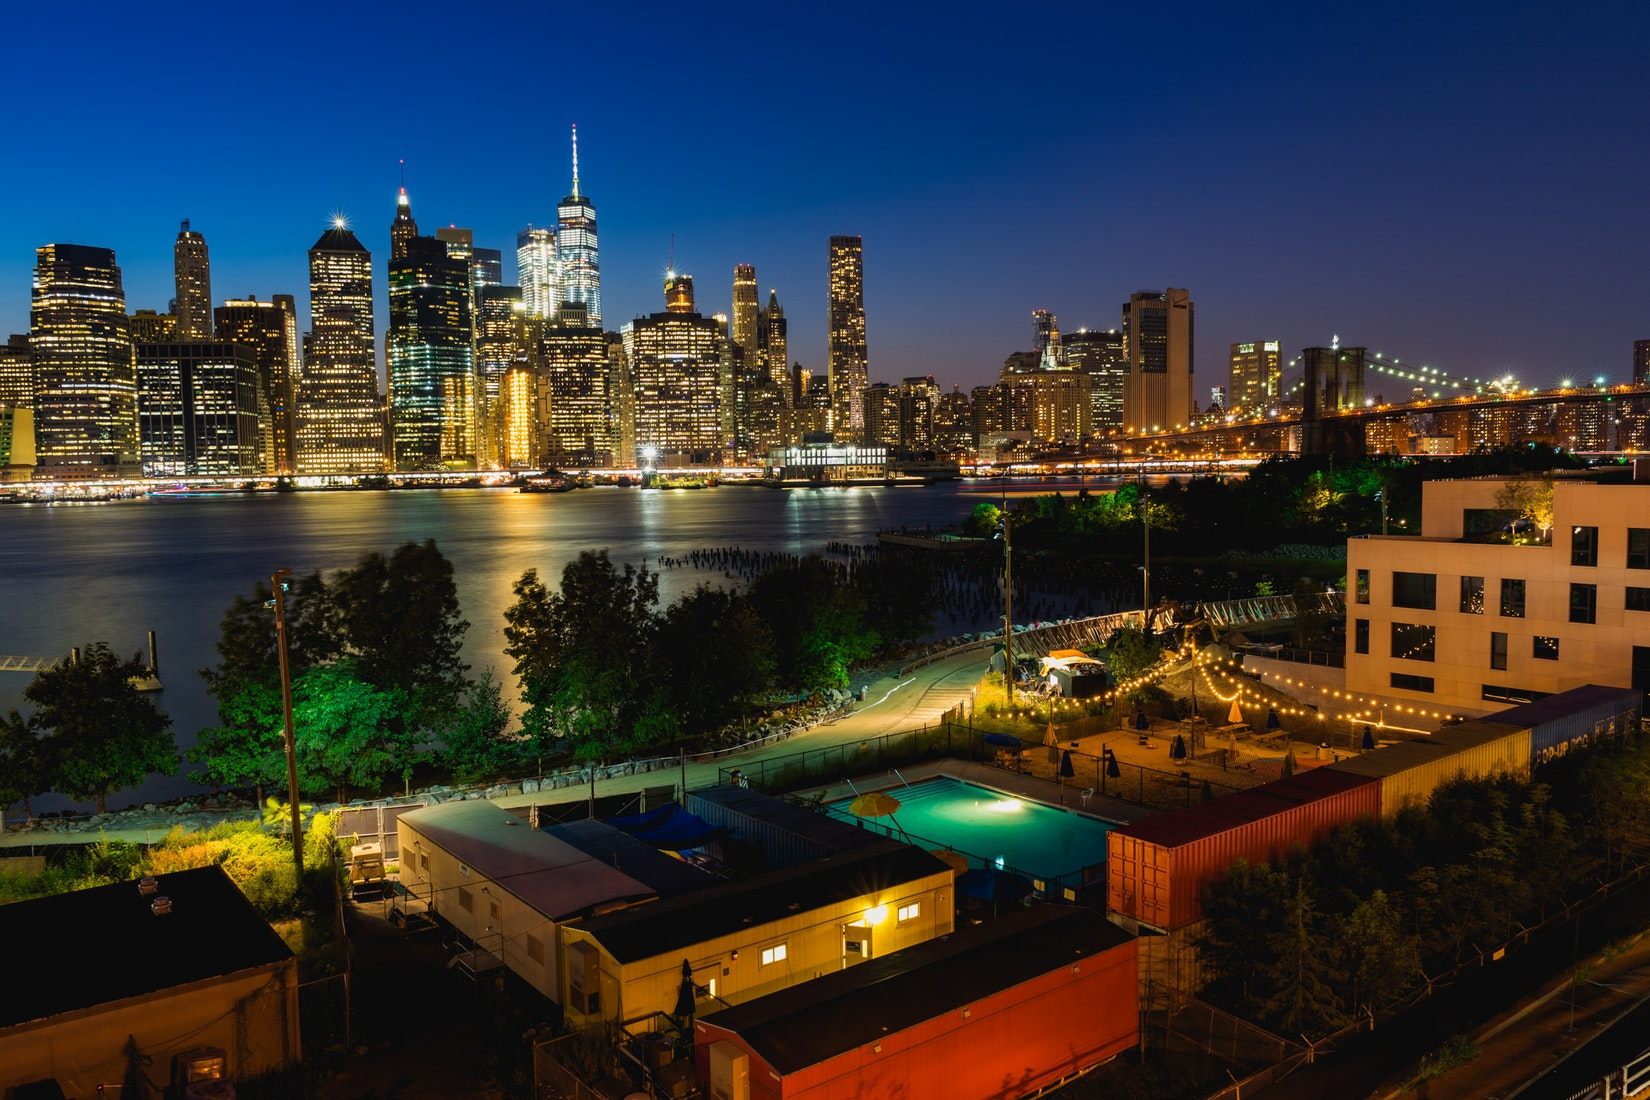 Brooklyn Bridge Park from above